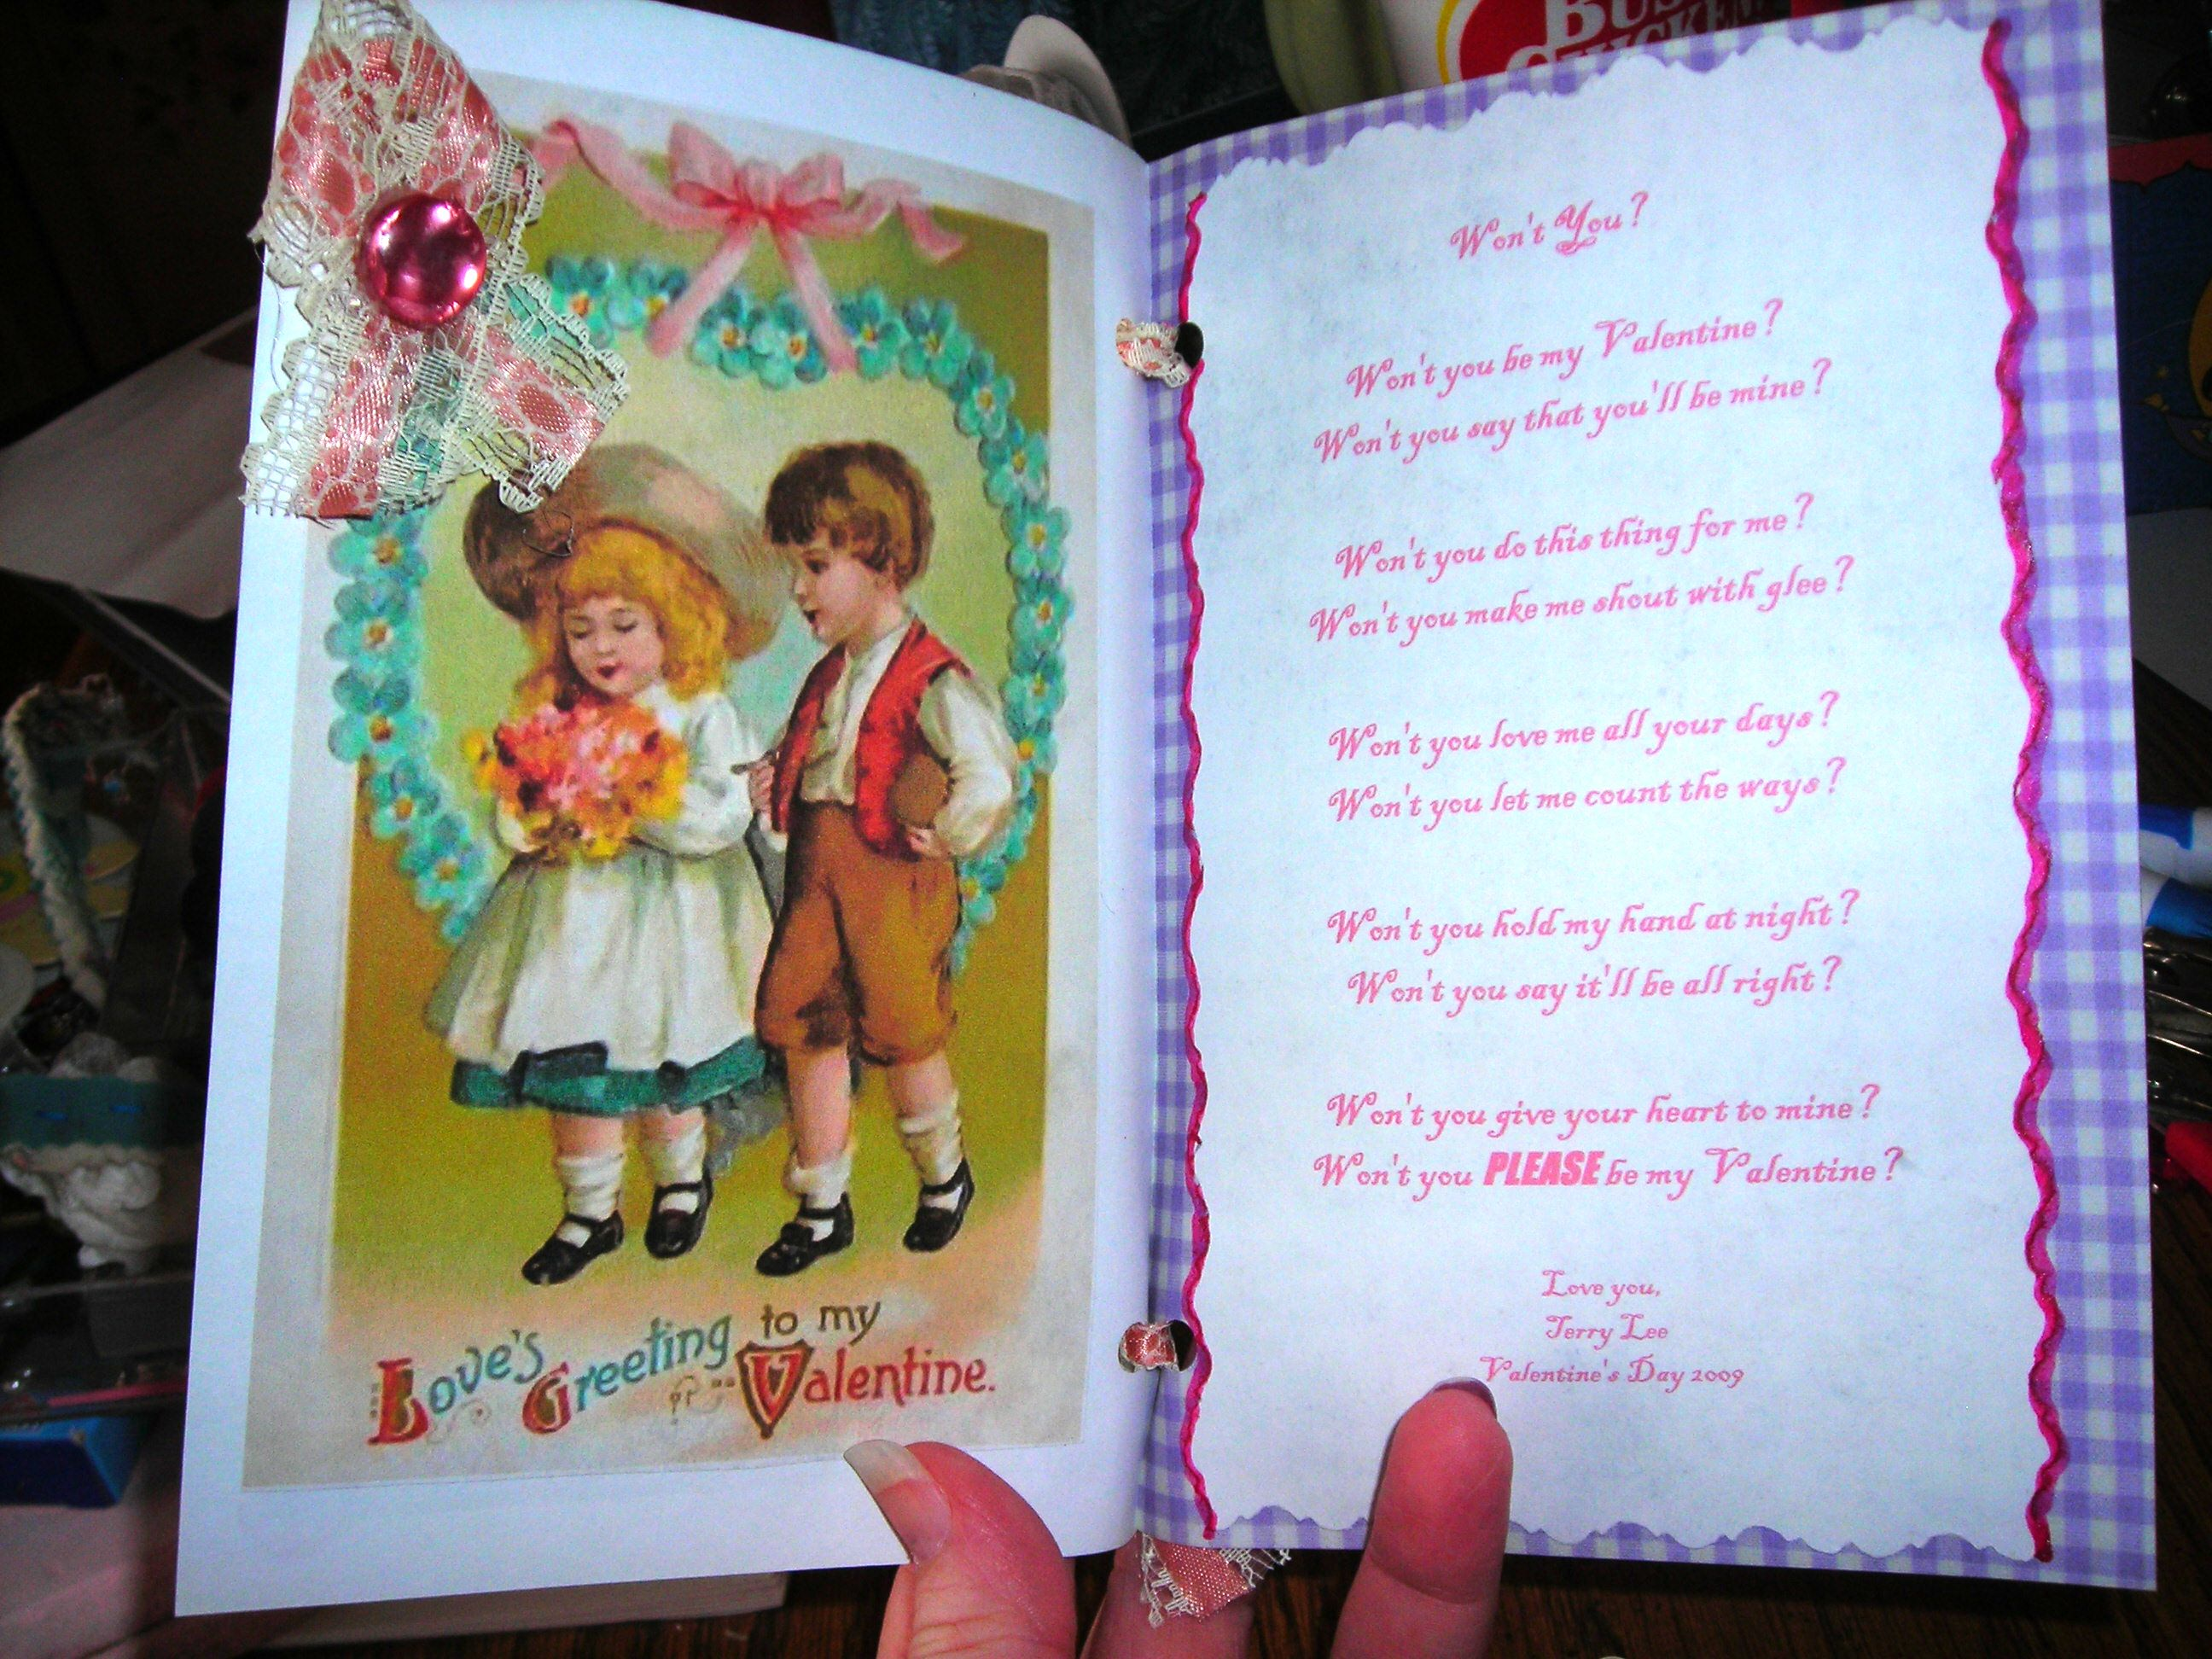 inside, with poem i wrote for him ...